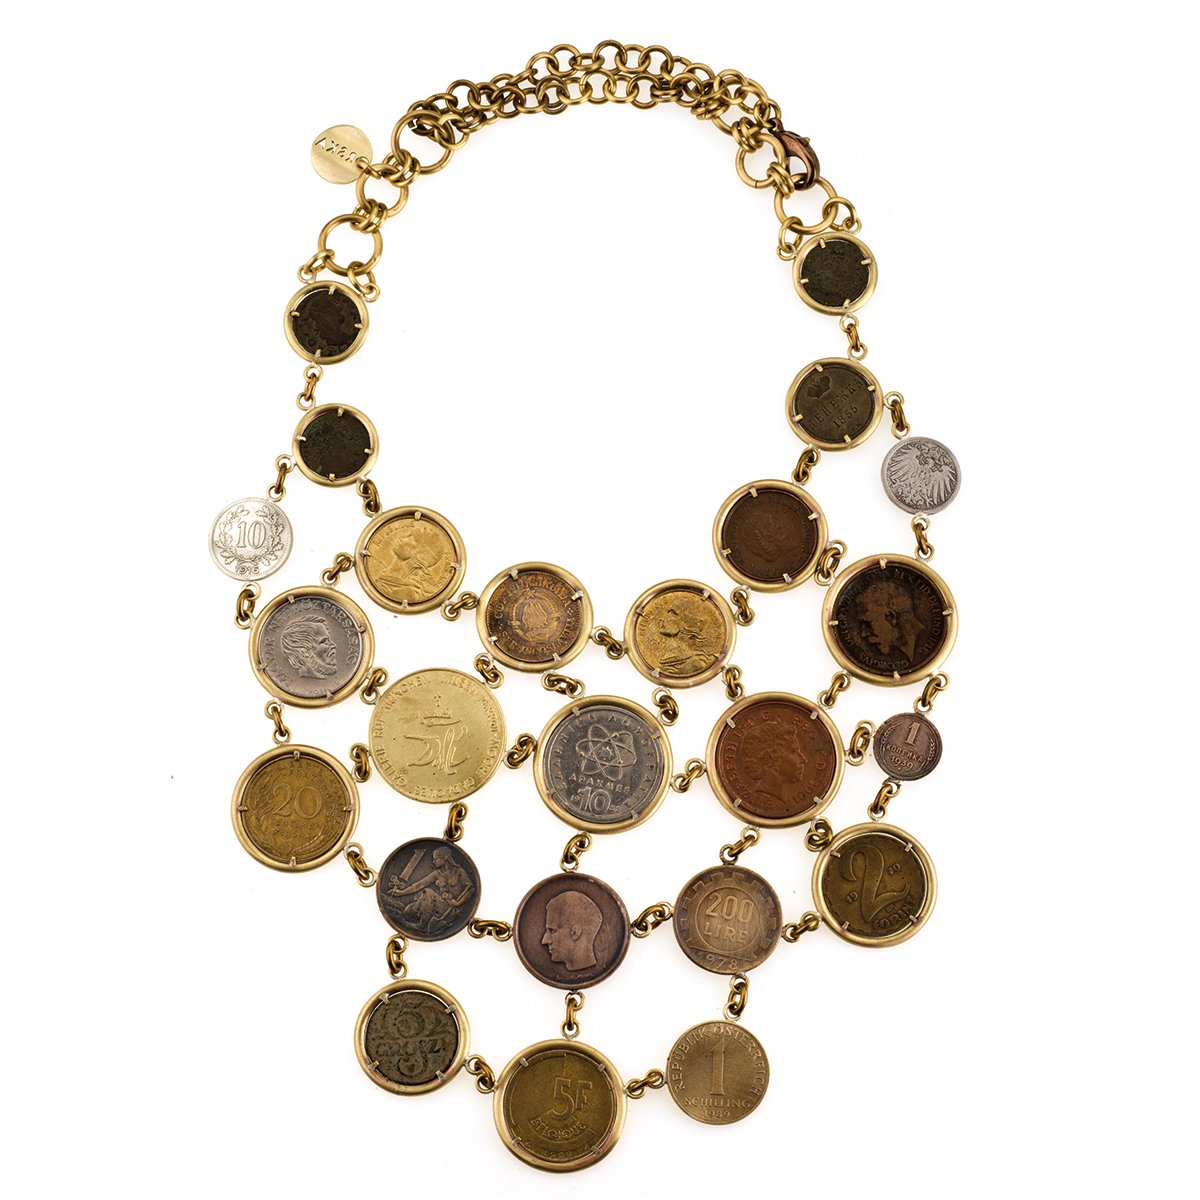 Necklace from Ducats collection - DN180-1